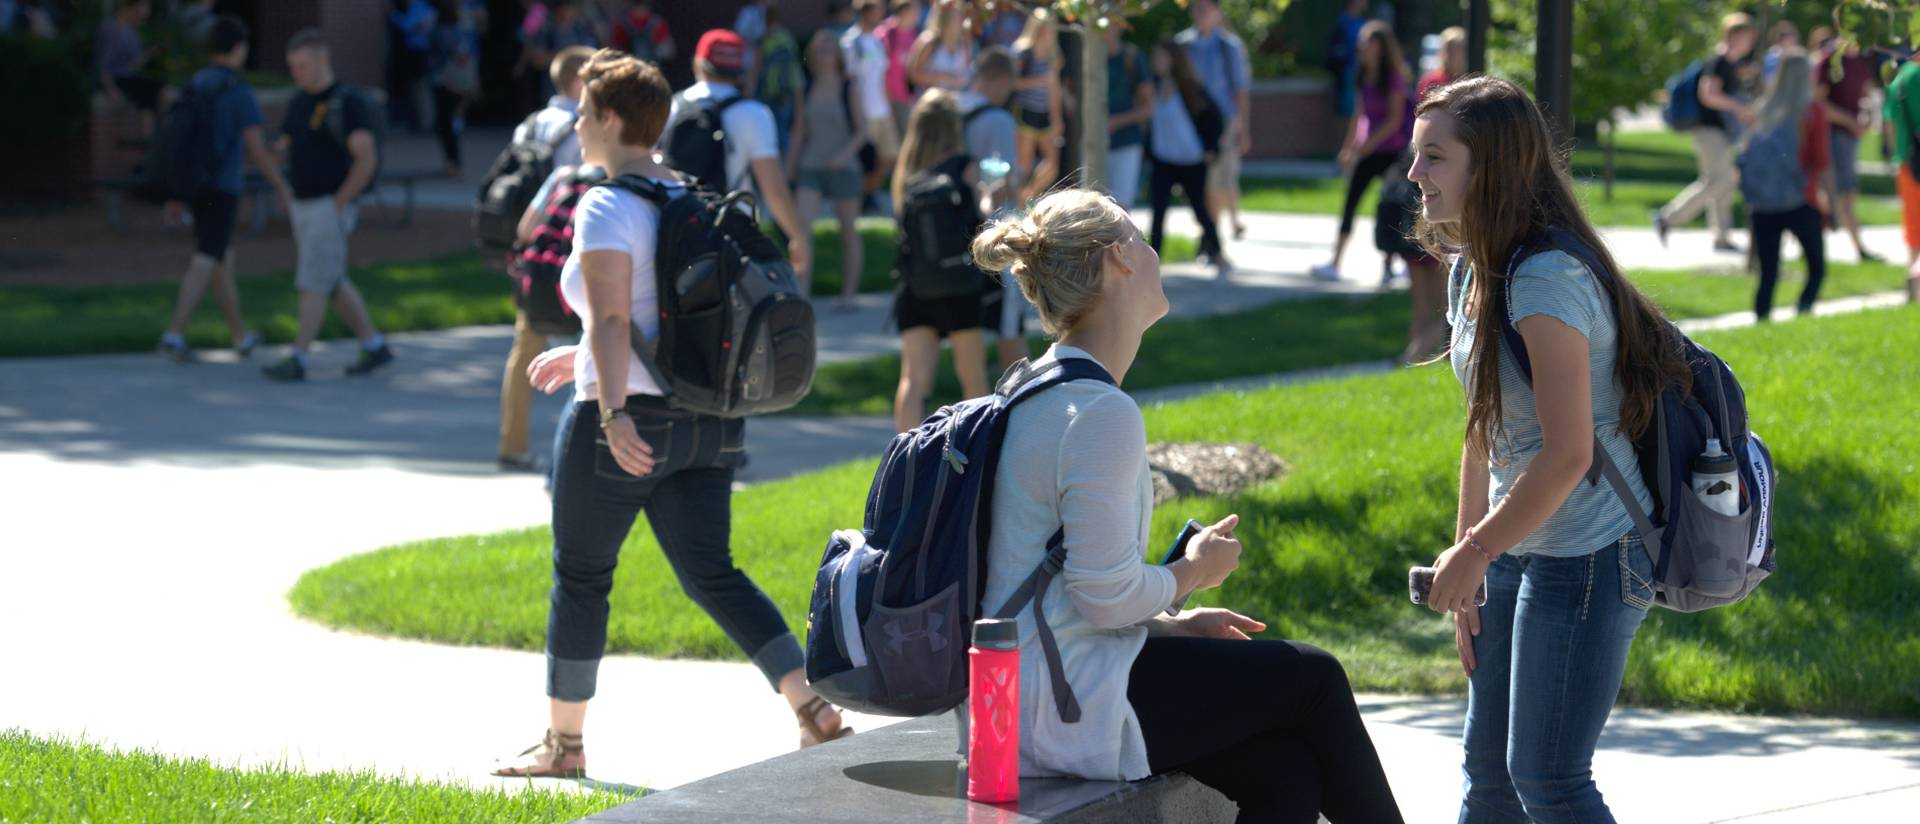 Students catch up on the first day of classes.